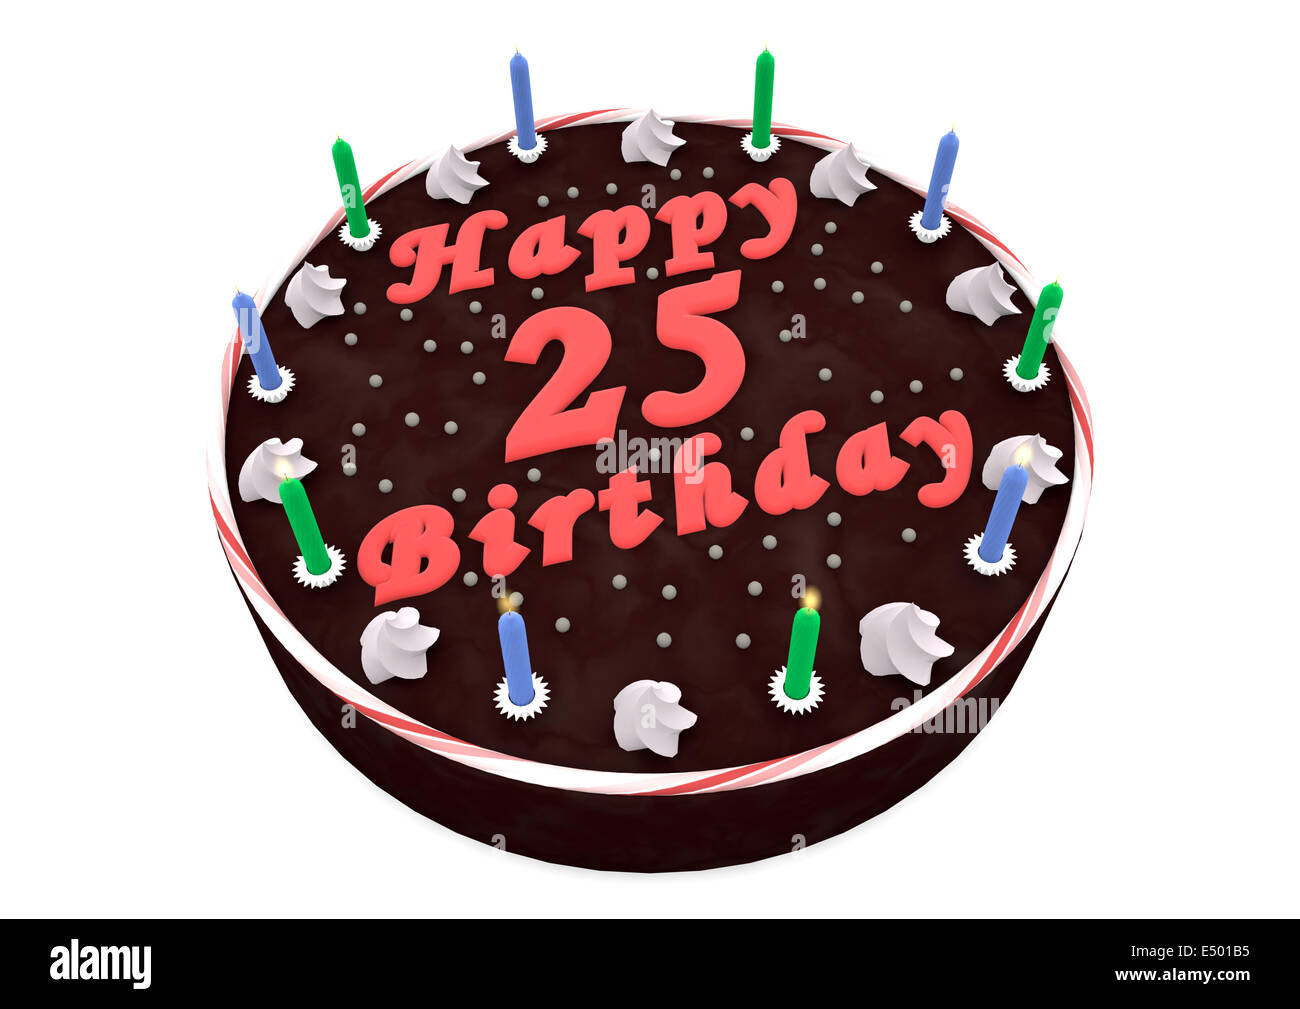 Magnificent Chocolate Cake For 25Th Birthday Stock Photo 71915849 Alamy Funny Birthday Cards Online Alyptdamsfinfo